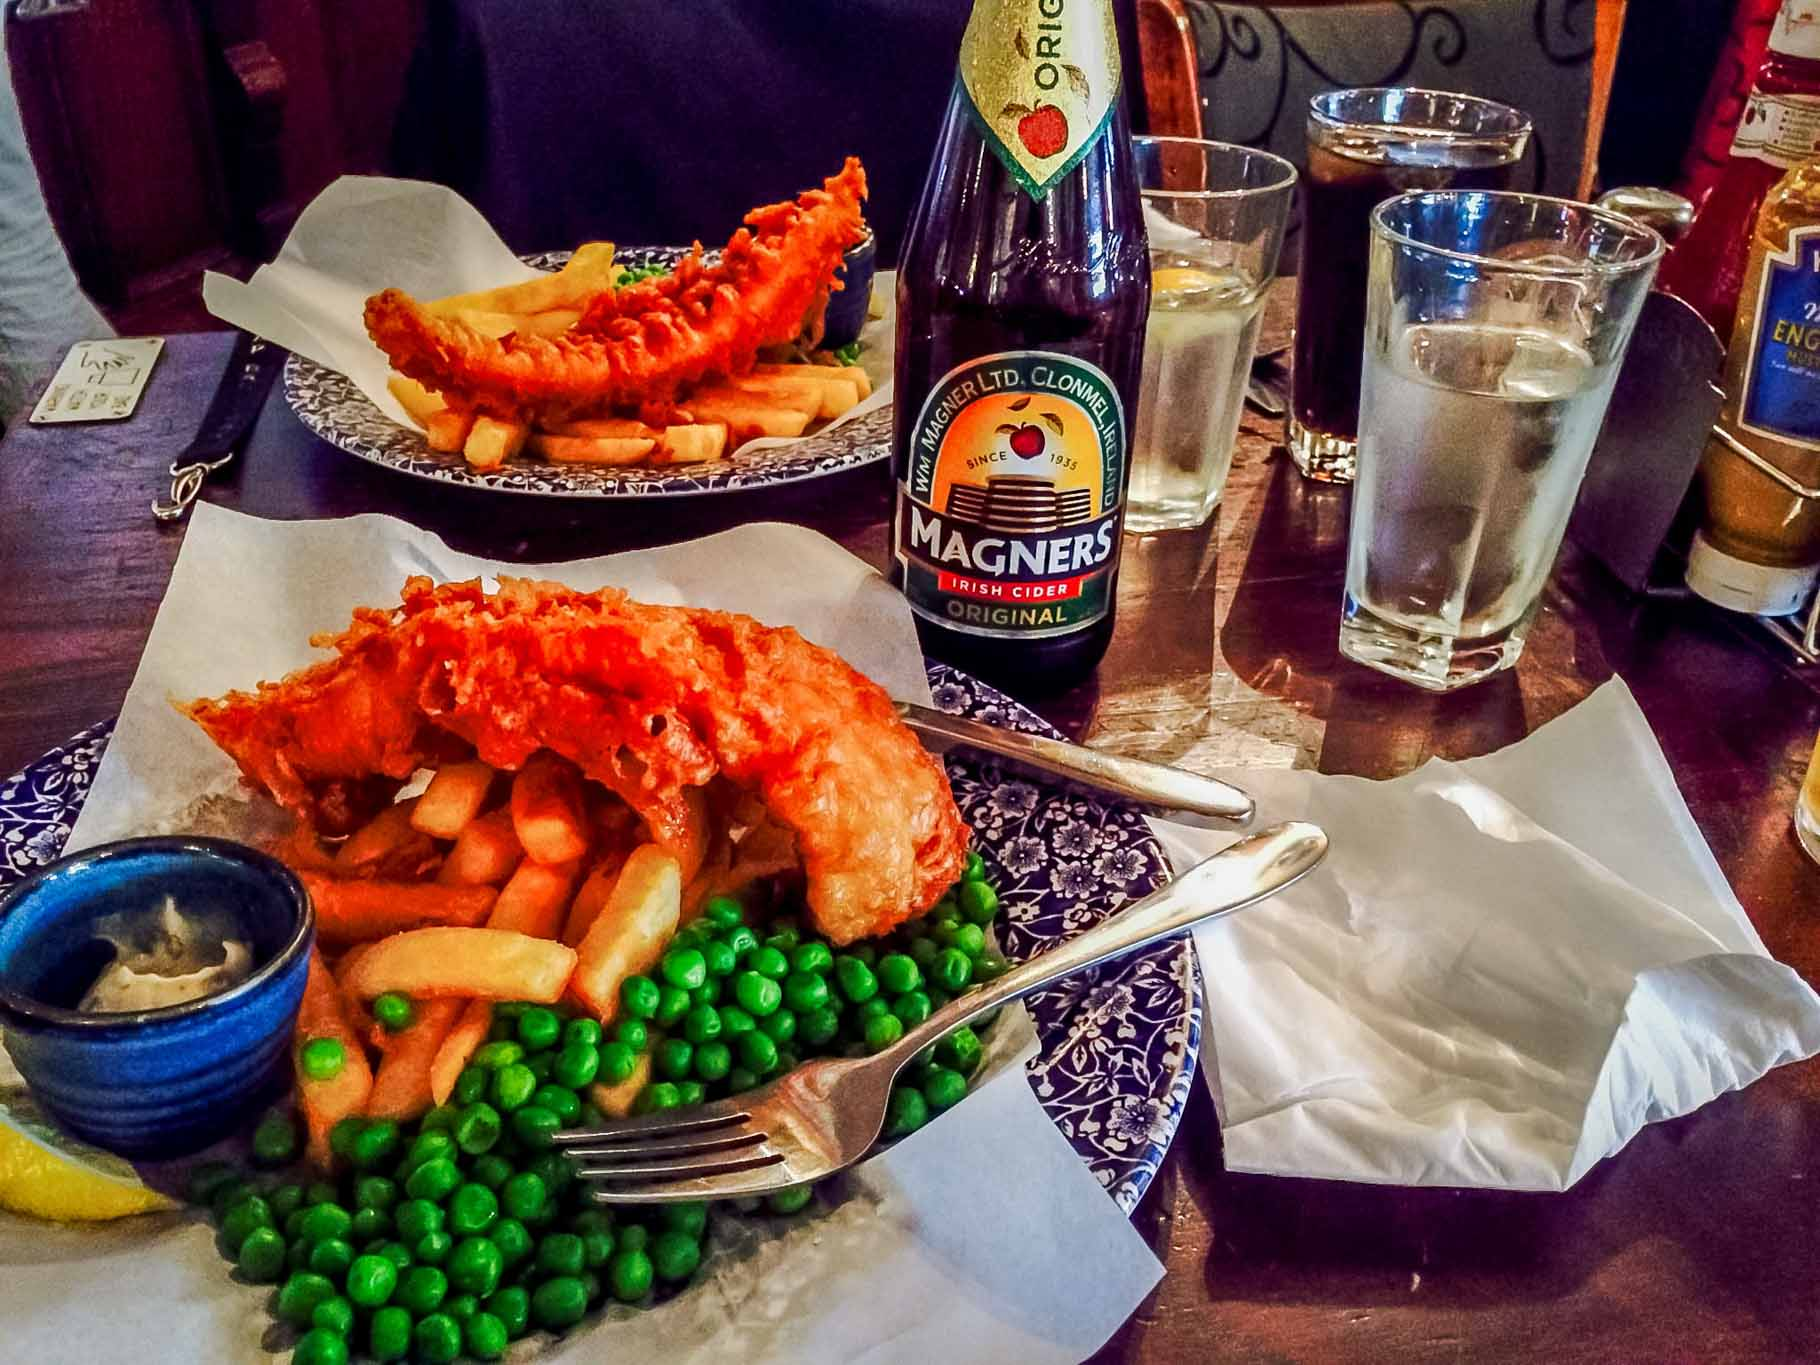 No Heathrow Layover would be complete without sampling the perfect fish and chips at a London pub! But exactly where is Heathrow aiport? While Heathrow is the airport in London, it is a long way from the city! A London connection is ideal for long layover flights, but does make it difficult leaving airport during layover.  That's why you need a Heathrow layover itinerary.